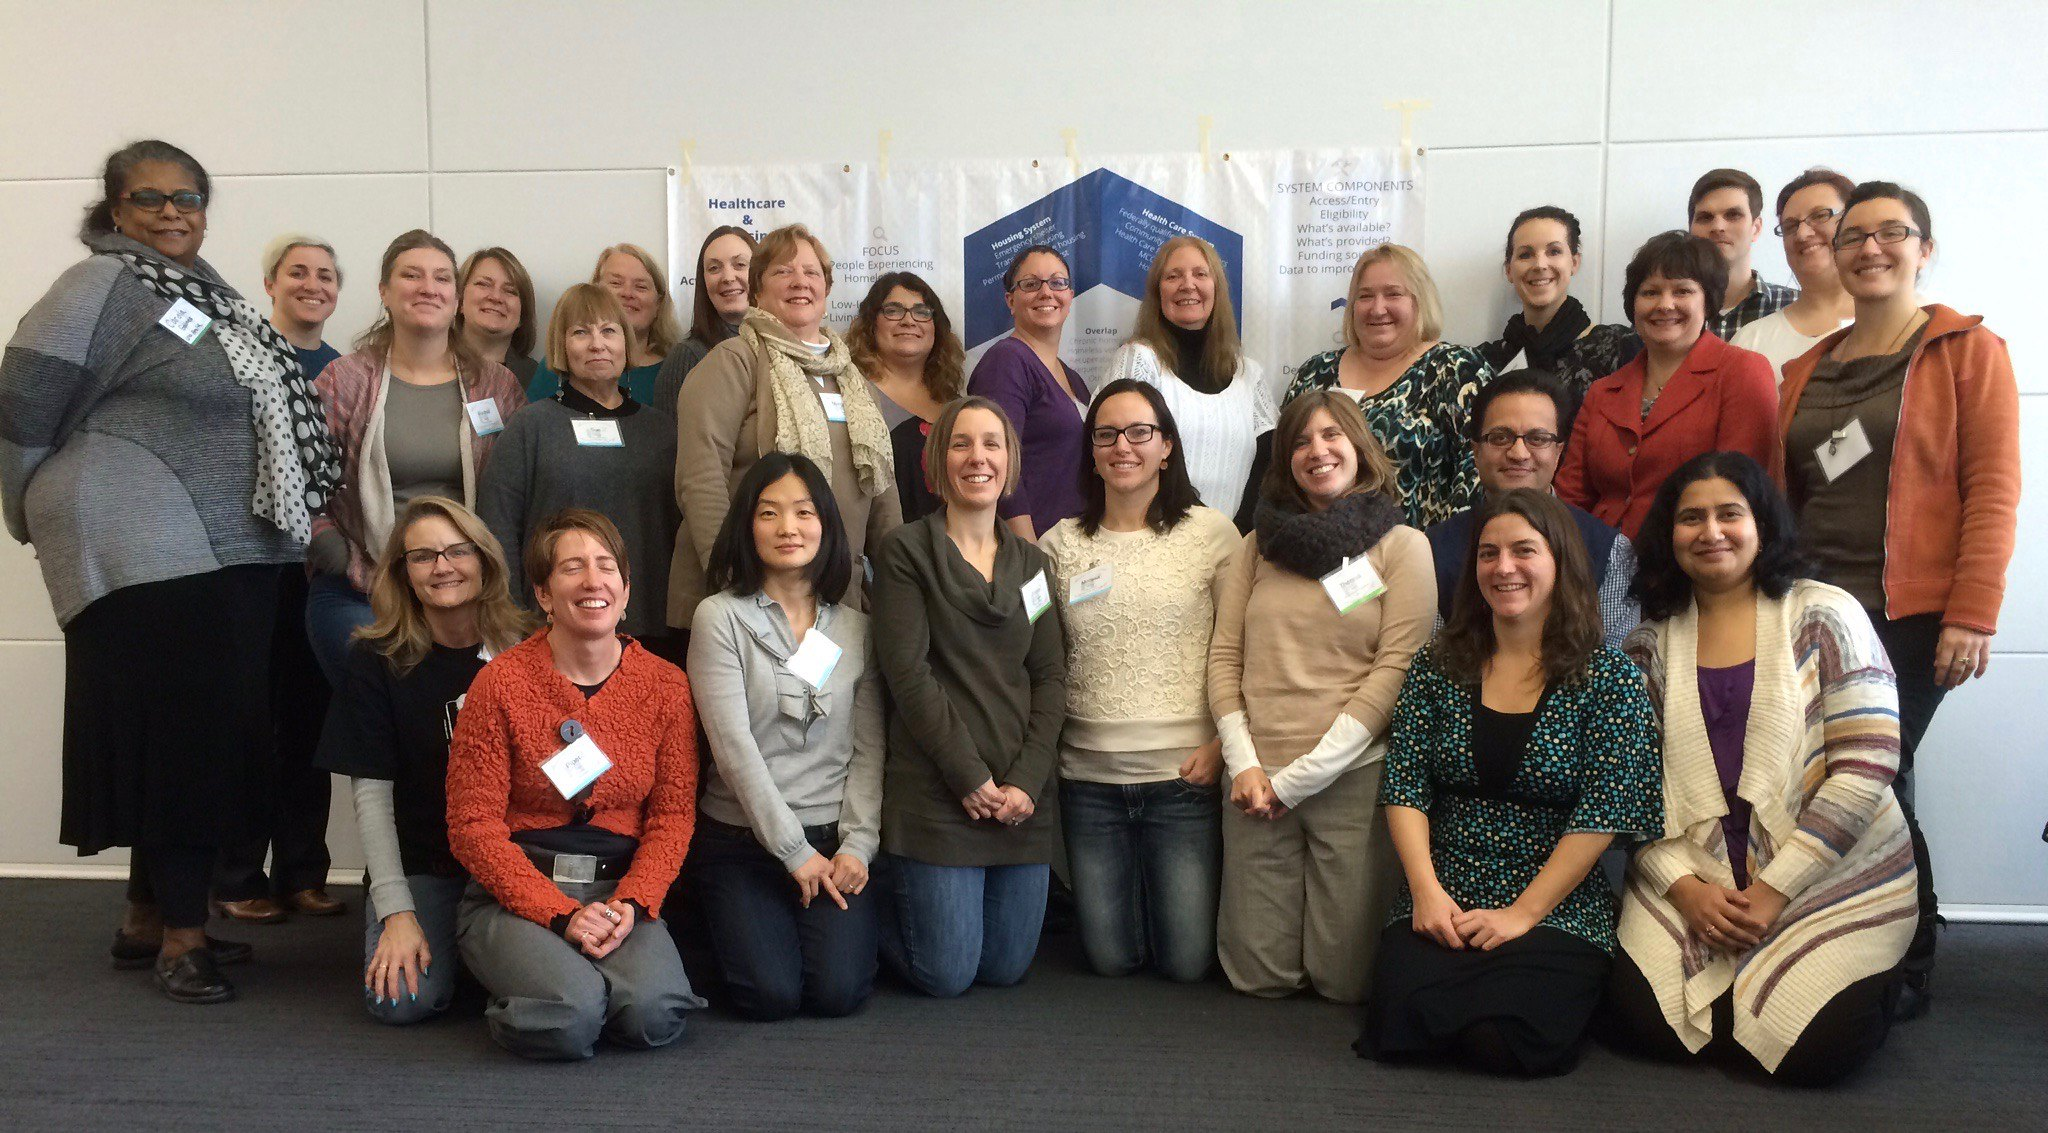 Housing and Health Initiative Action Planning Session - Wisconsin 2